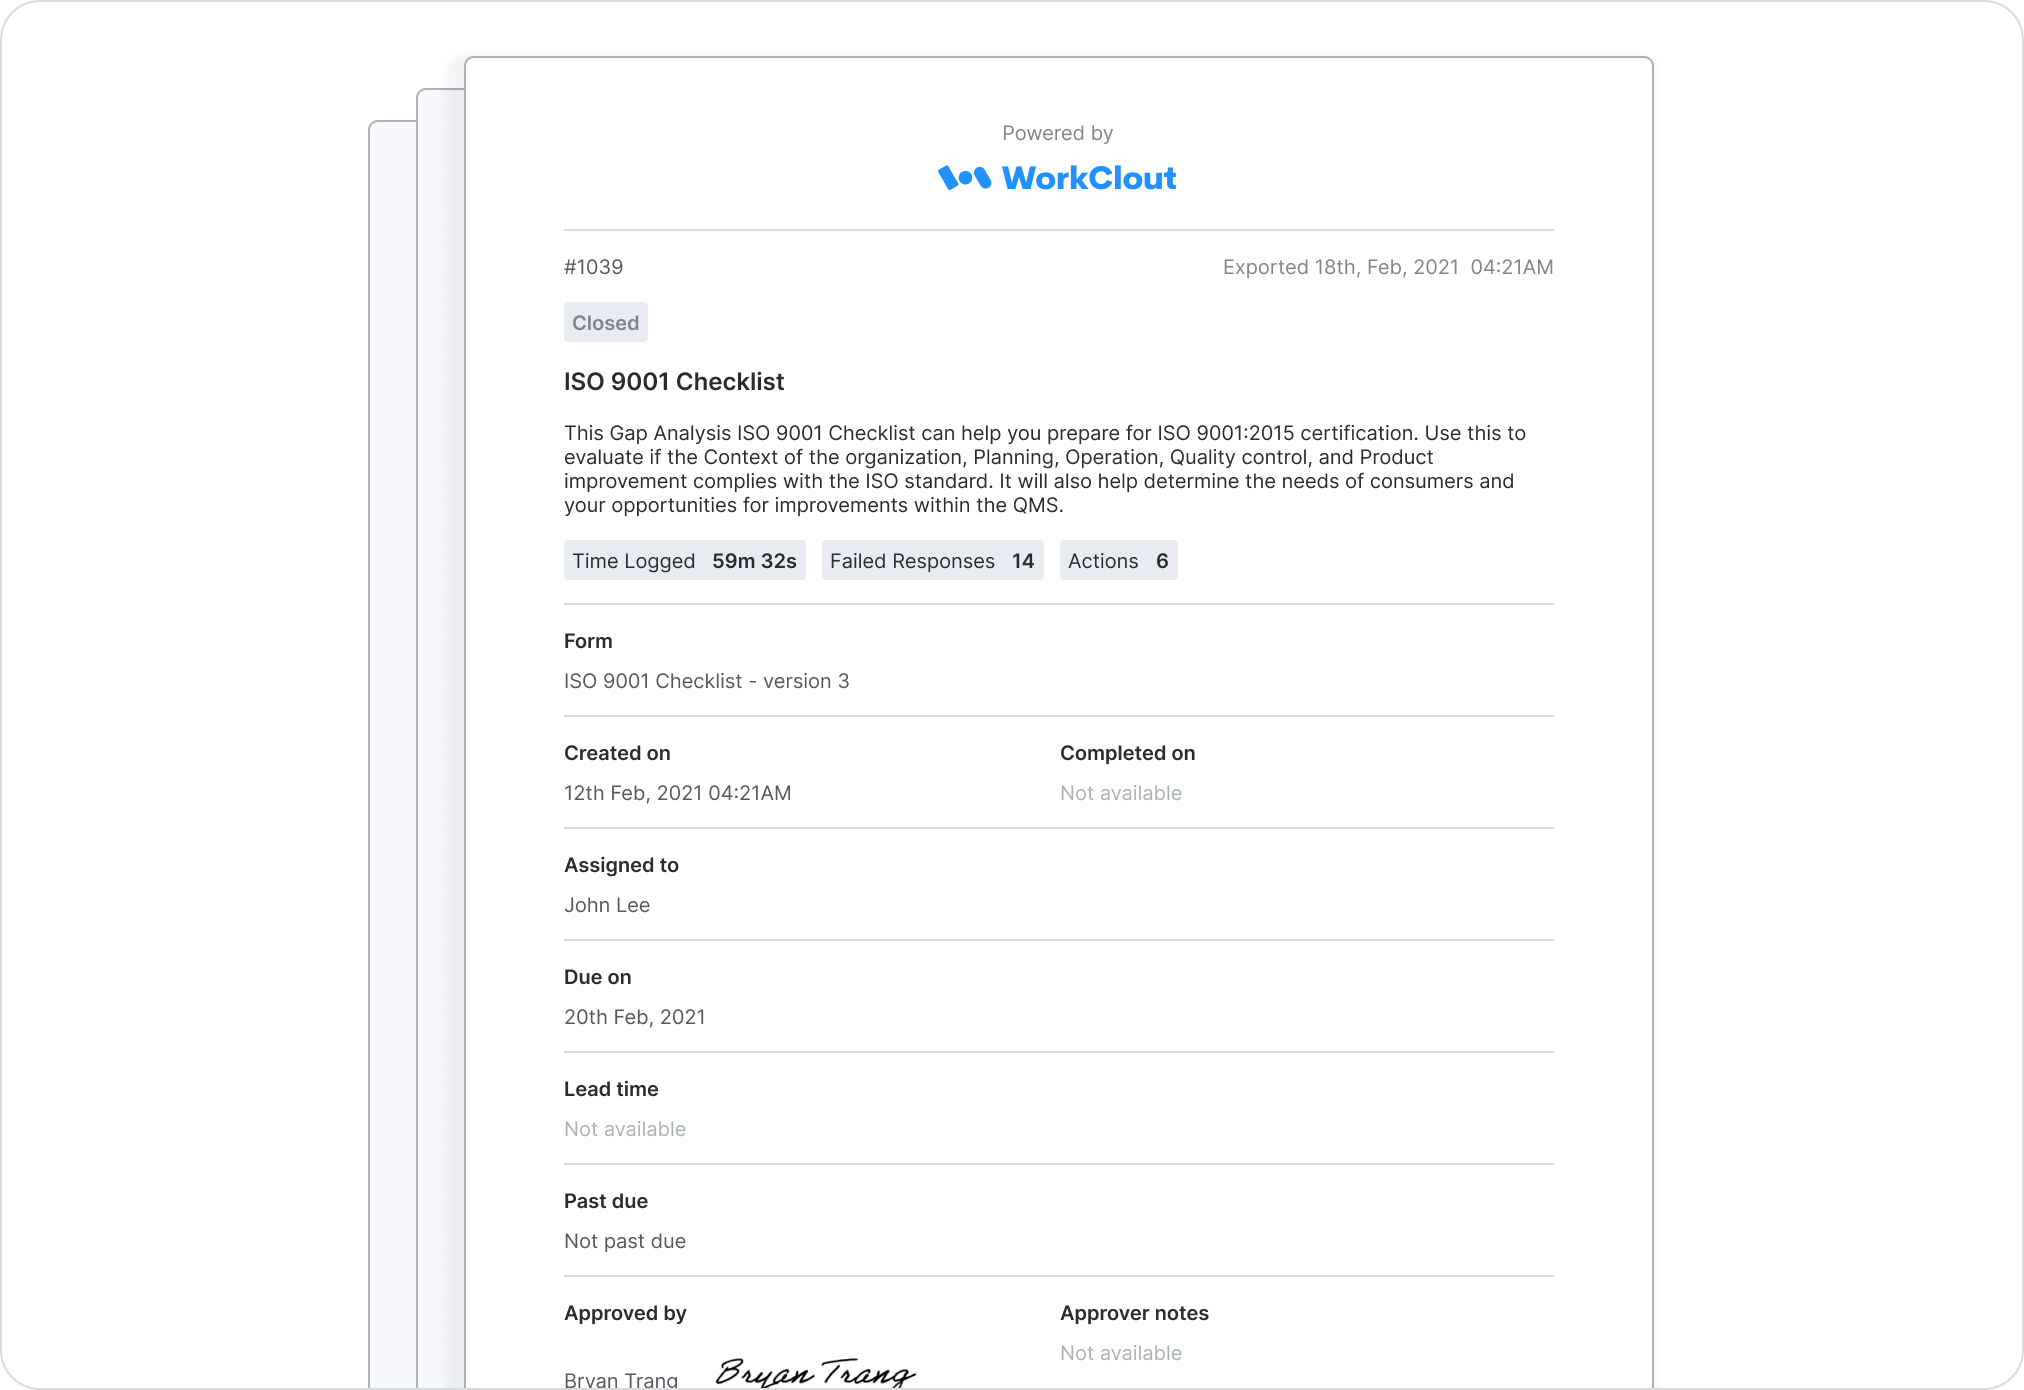 PDF export of WorkClout form data